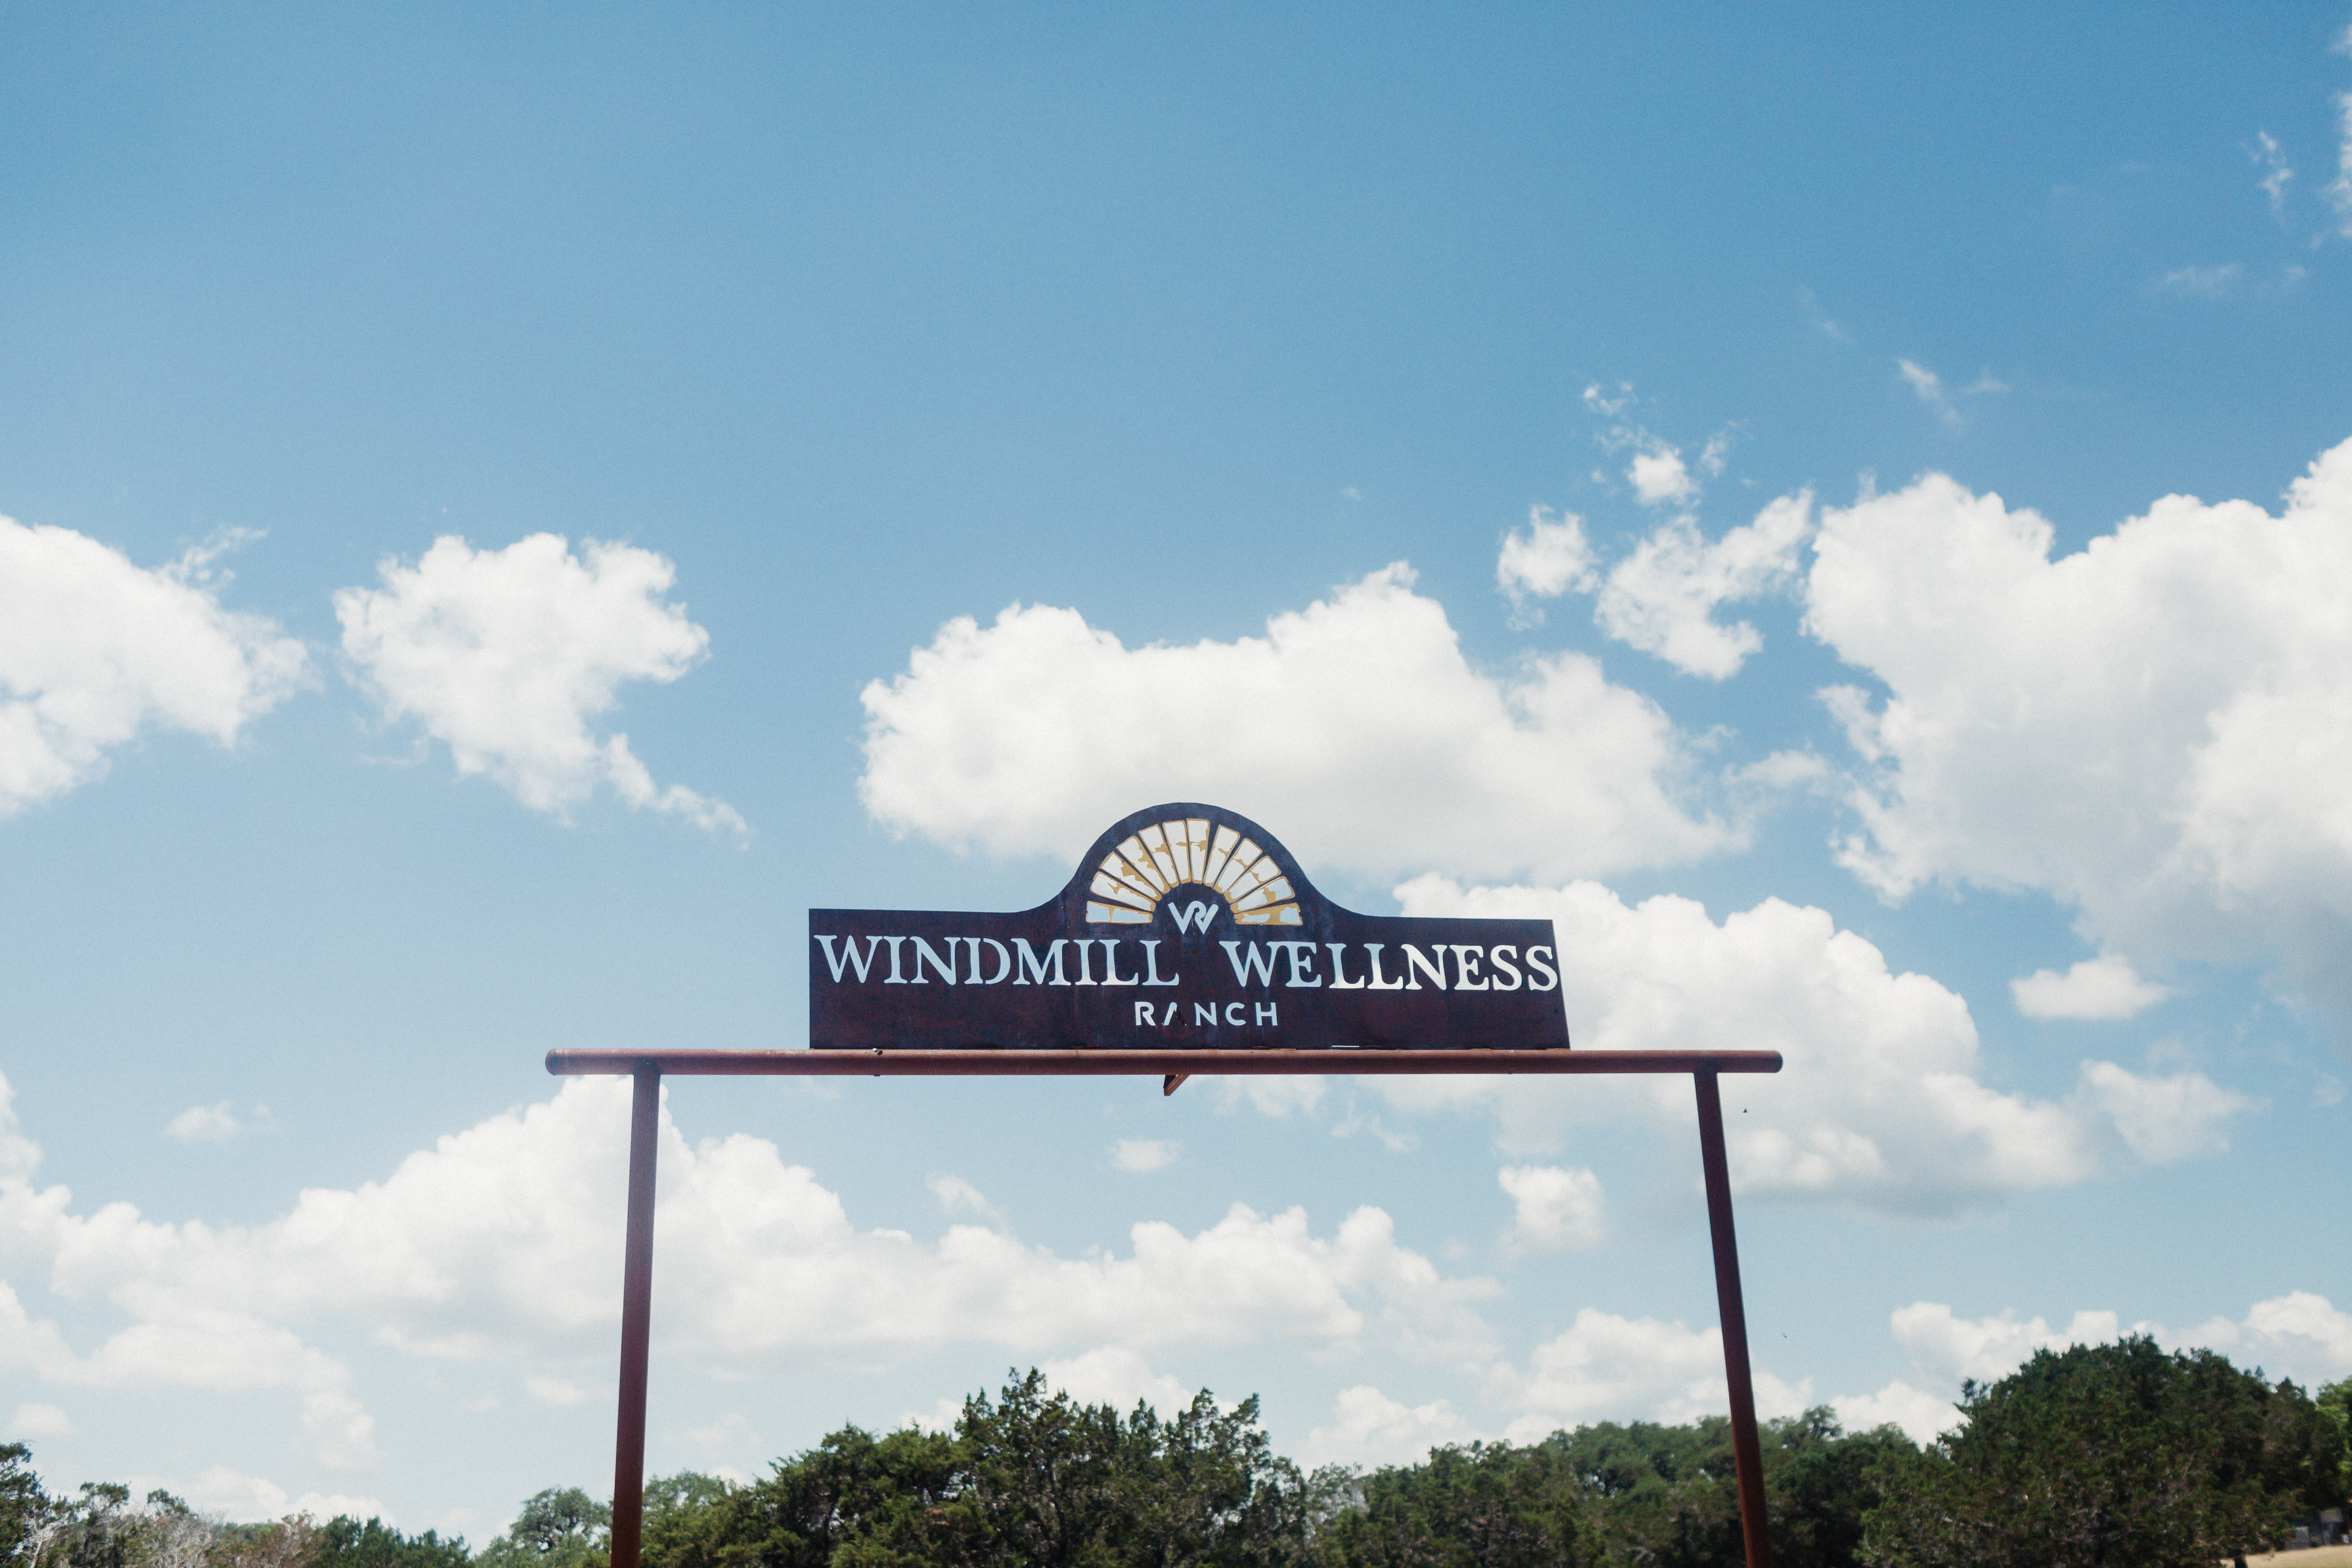 Windmill Wellness Ranch